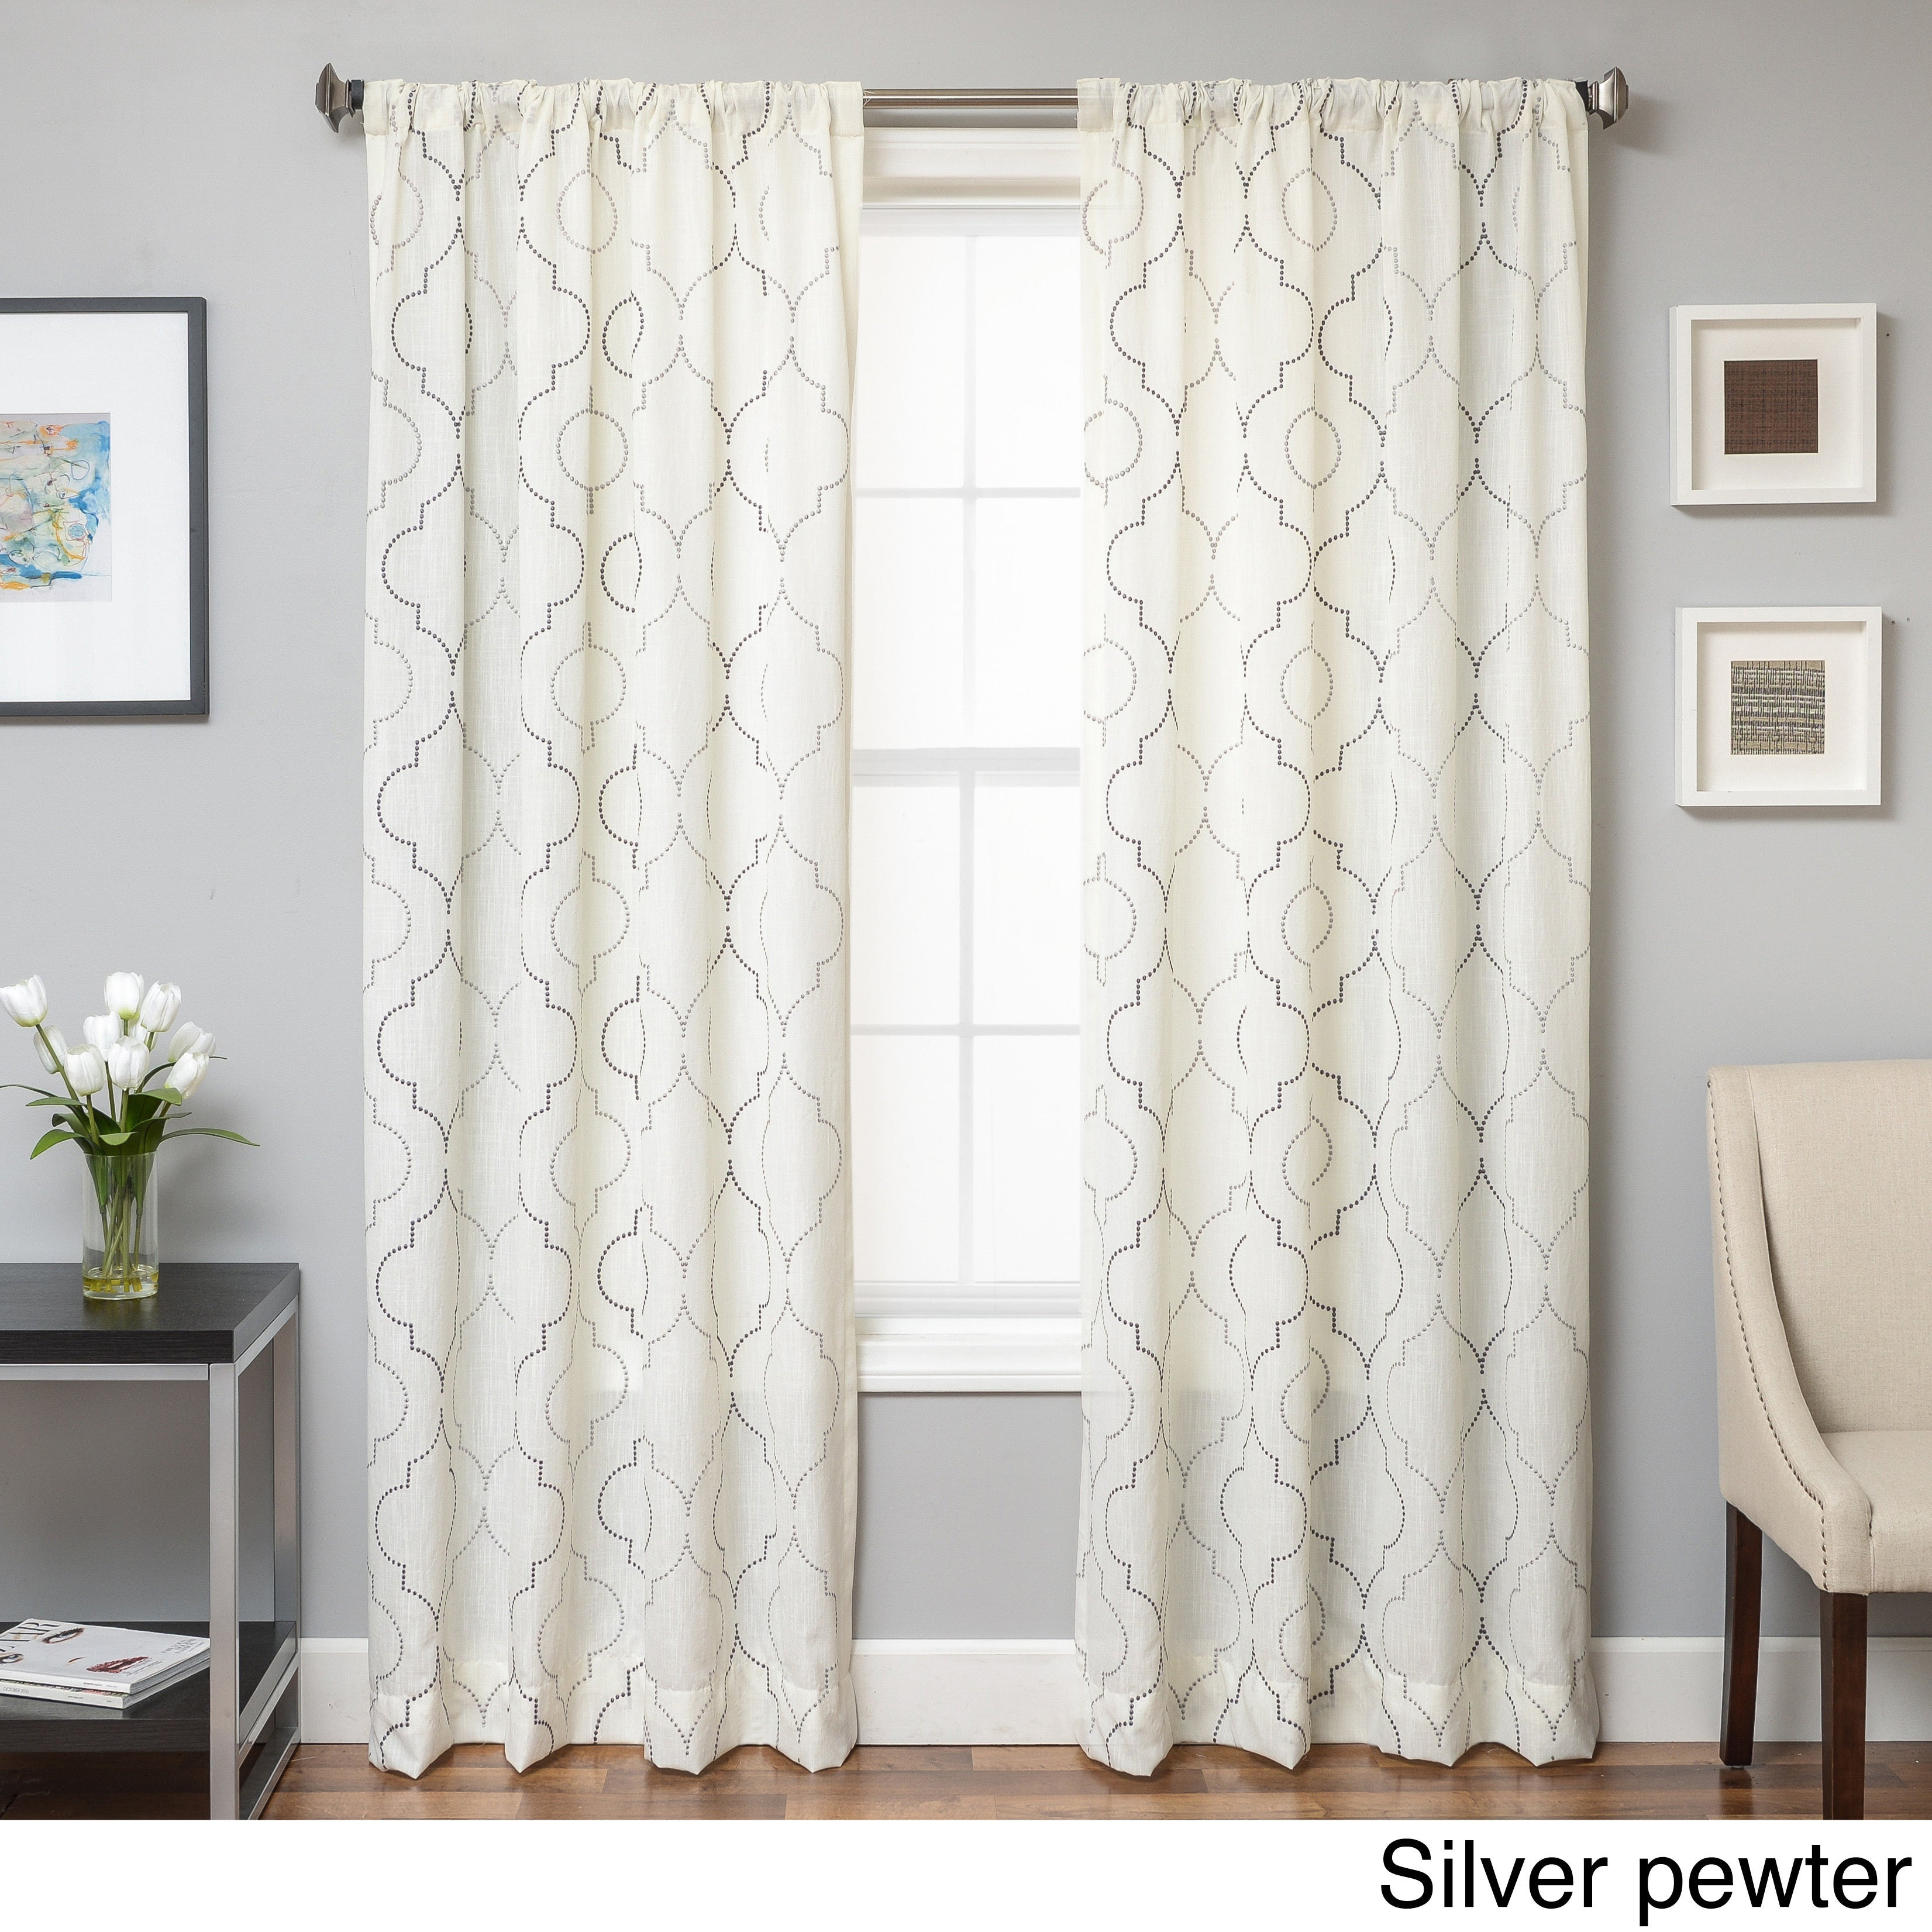 Softline Monza Emboridered Faux Linen Curtain Panel Pertaining To Archaeo Jigsaw Embroidery Linen Blend Curtain Panels (Image 16 of 20)